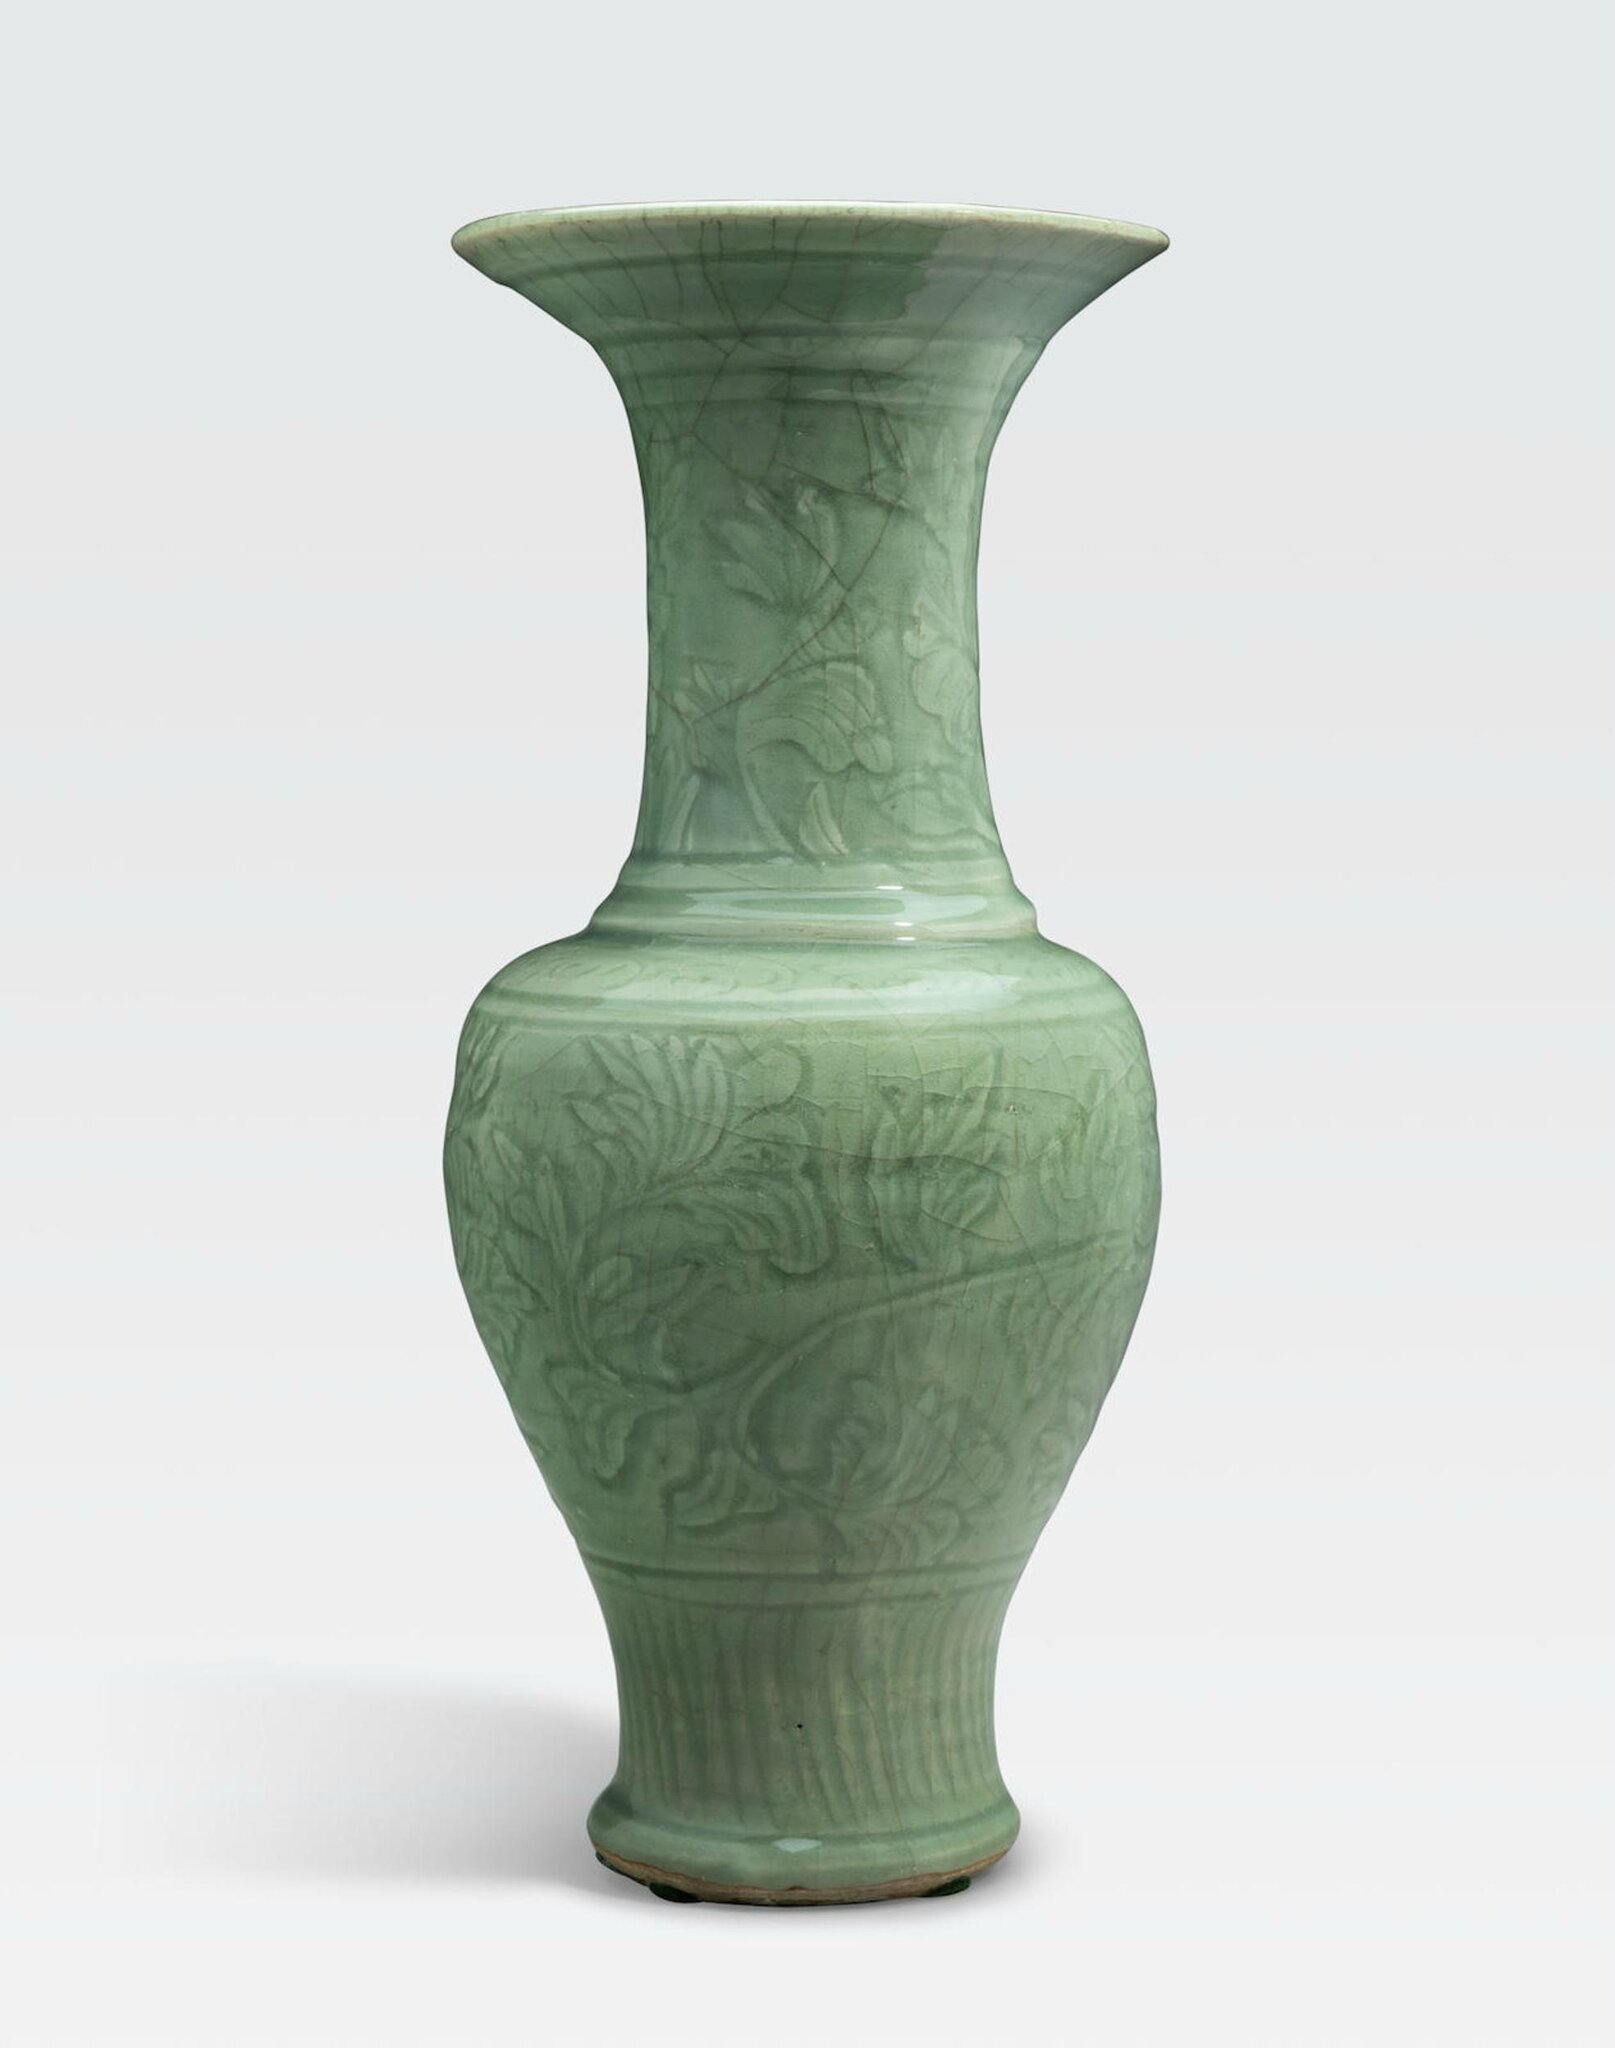 A Longquan trumpet-neck vase with incised decoration, Ming dynasty (1368-1644)